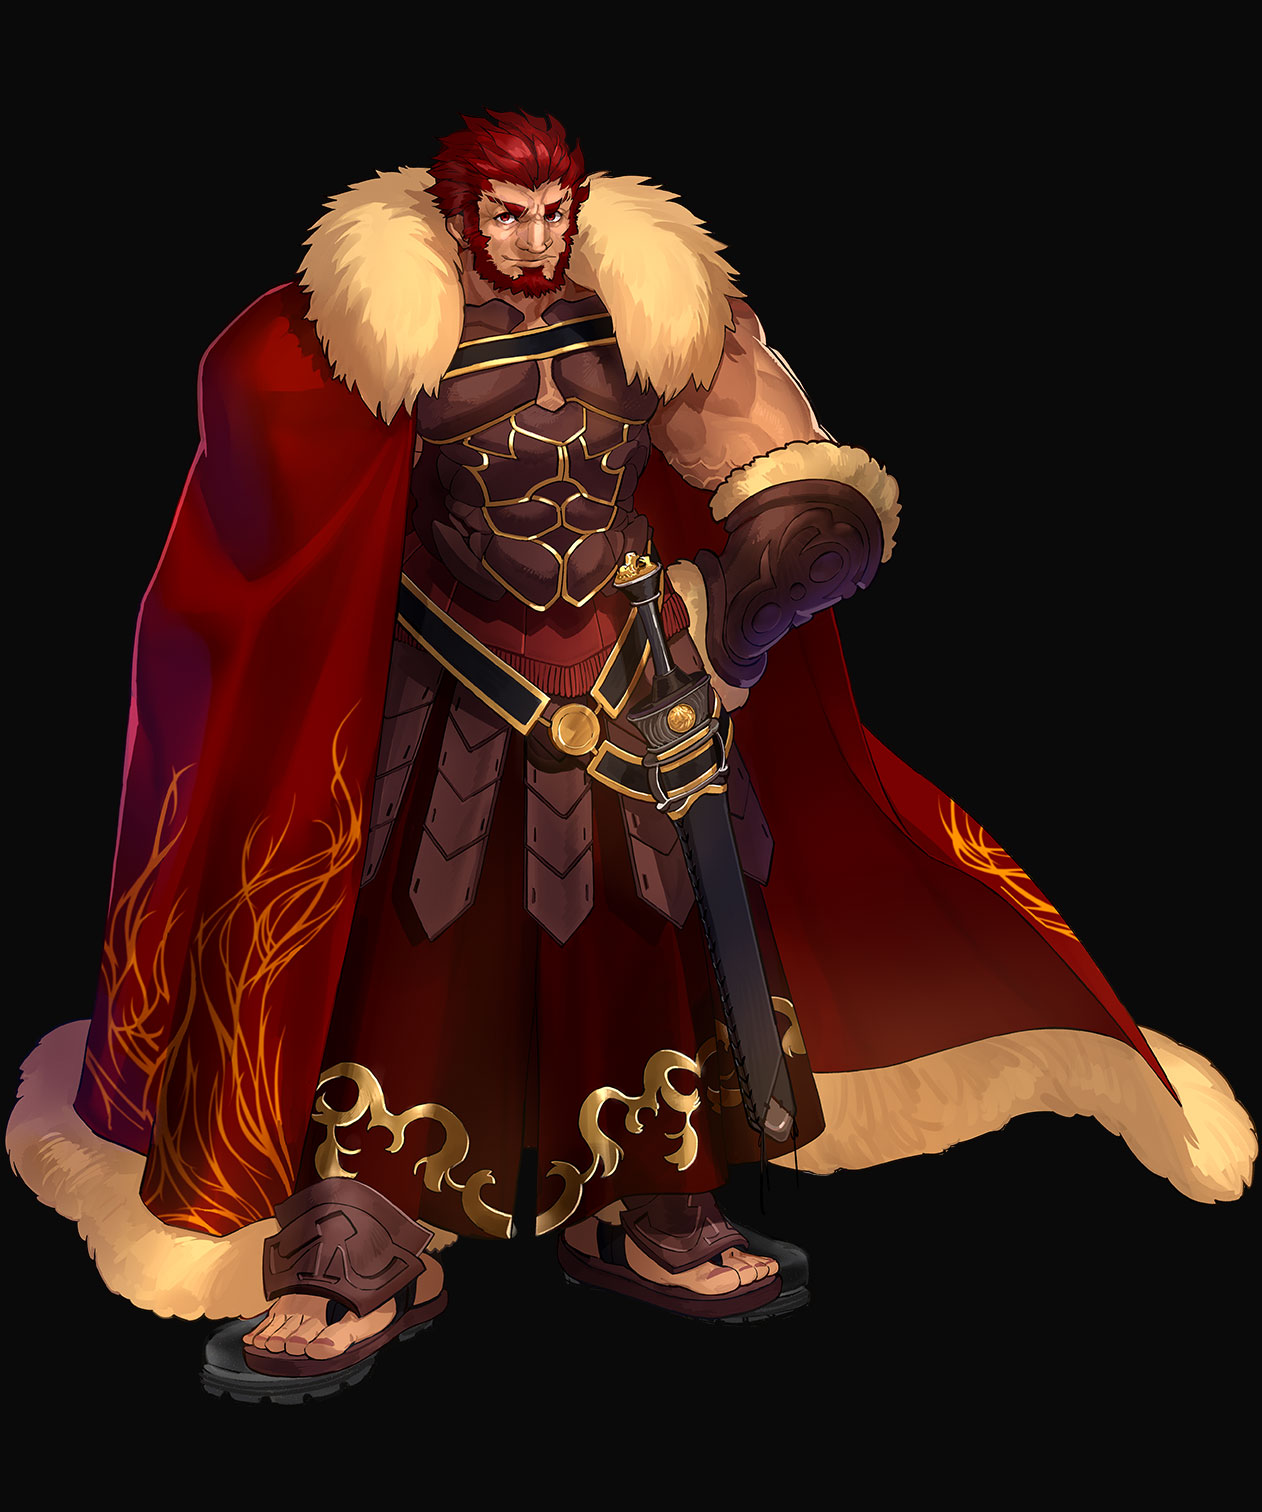 Fate/EXTELLA: The Umbral Star - Iskandar